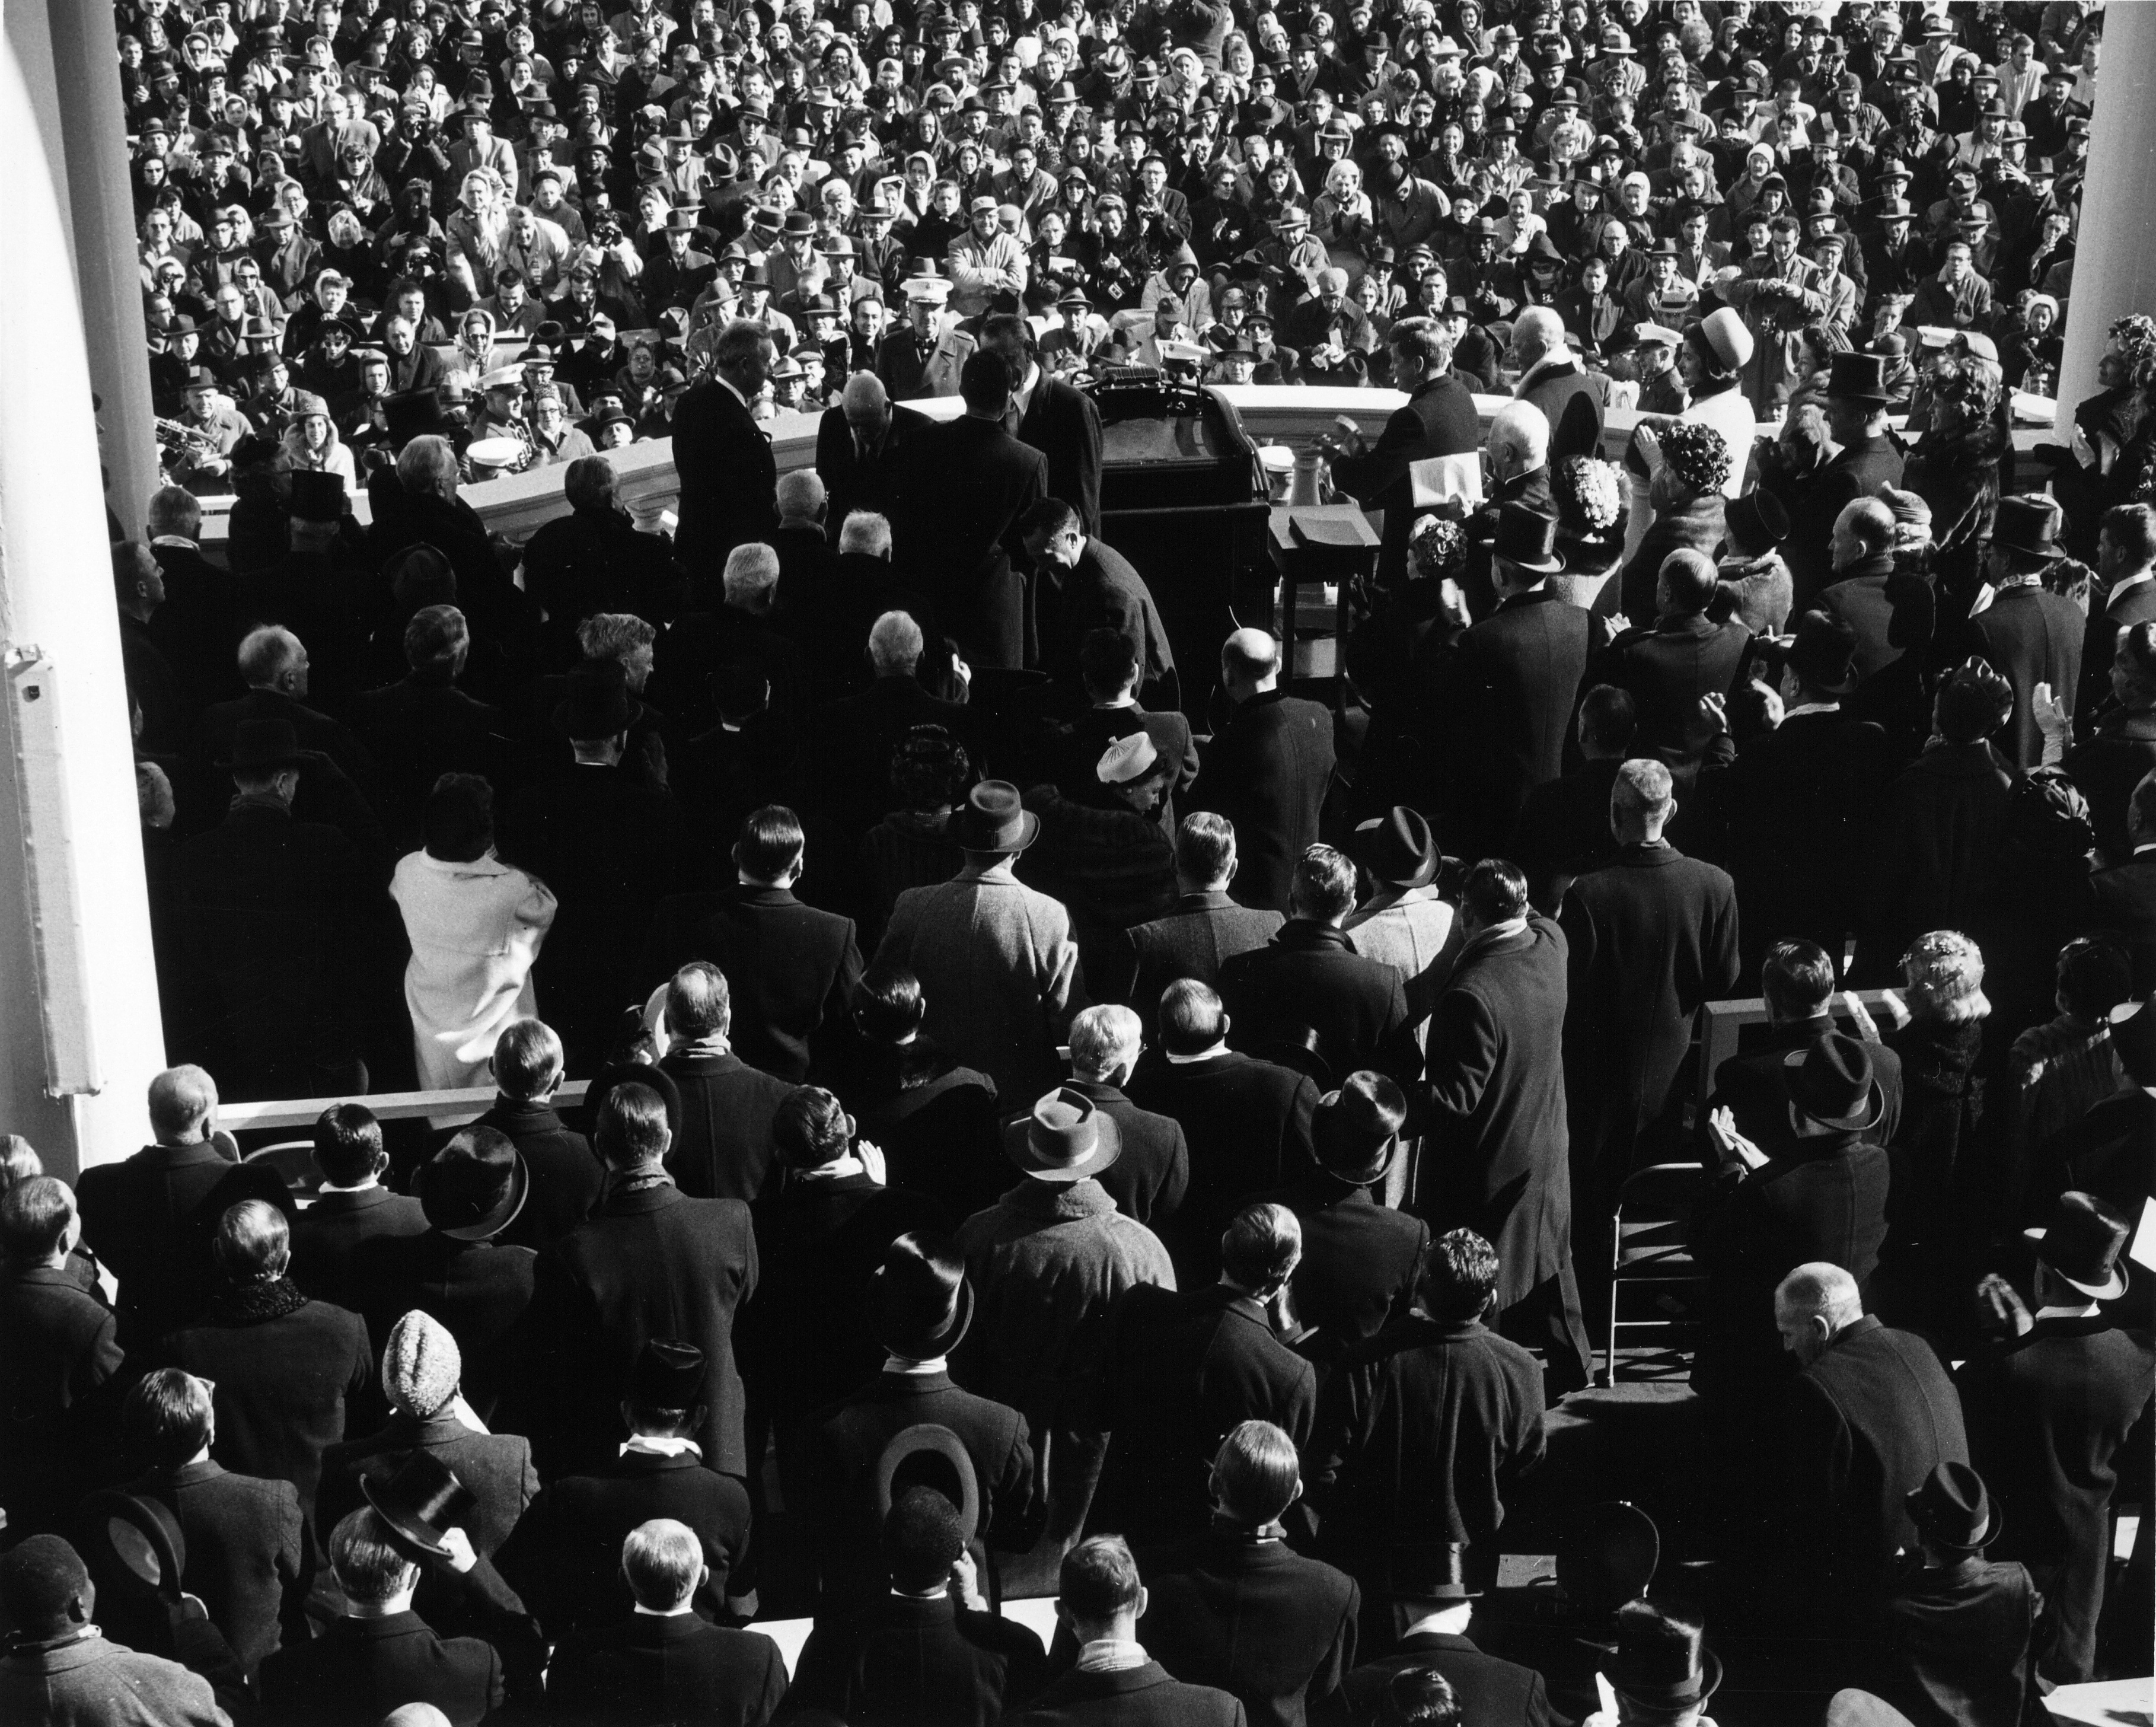 The Inauguration of John F. Kennedy as seen from behind. The few top hats in the crowd can be distinguished by the shininess of the hat\u0027s flat crown